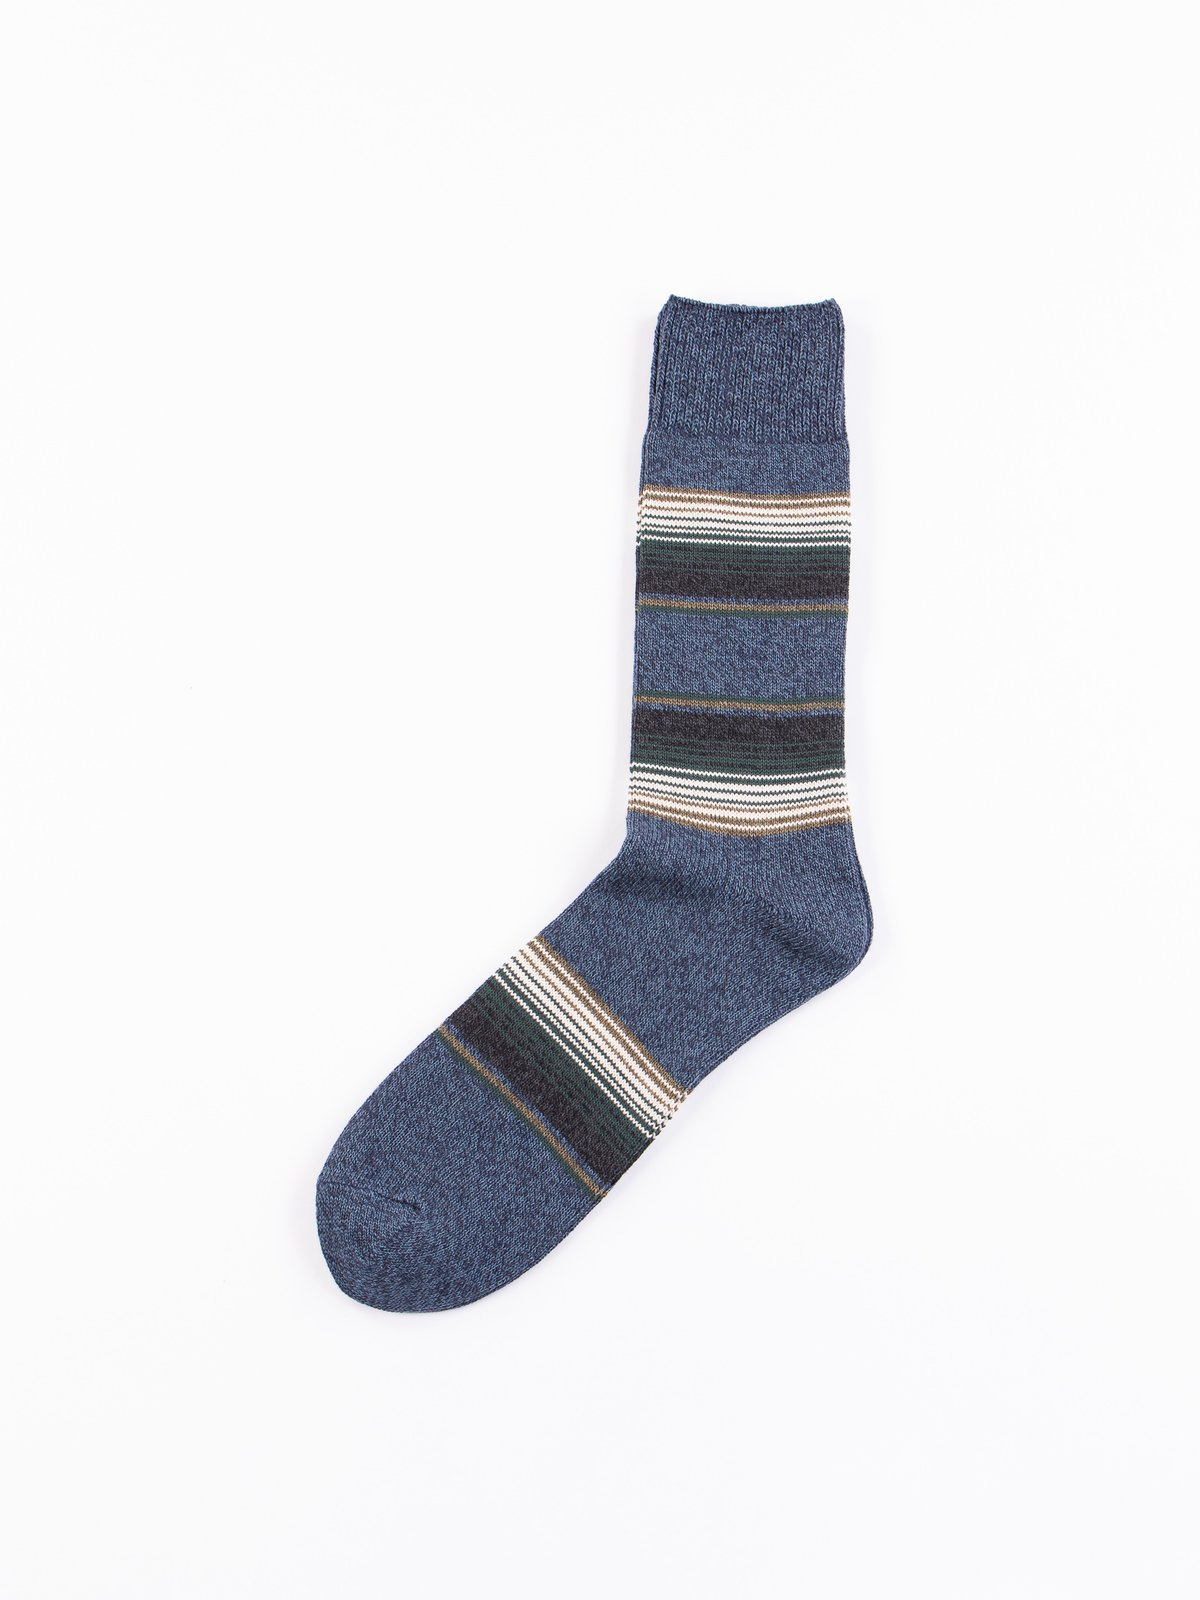 Mix Navy Baja Cali Stripe Socks - Image 1